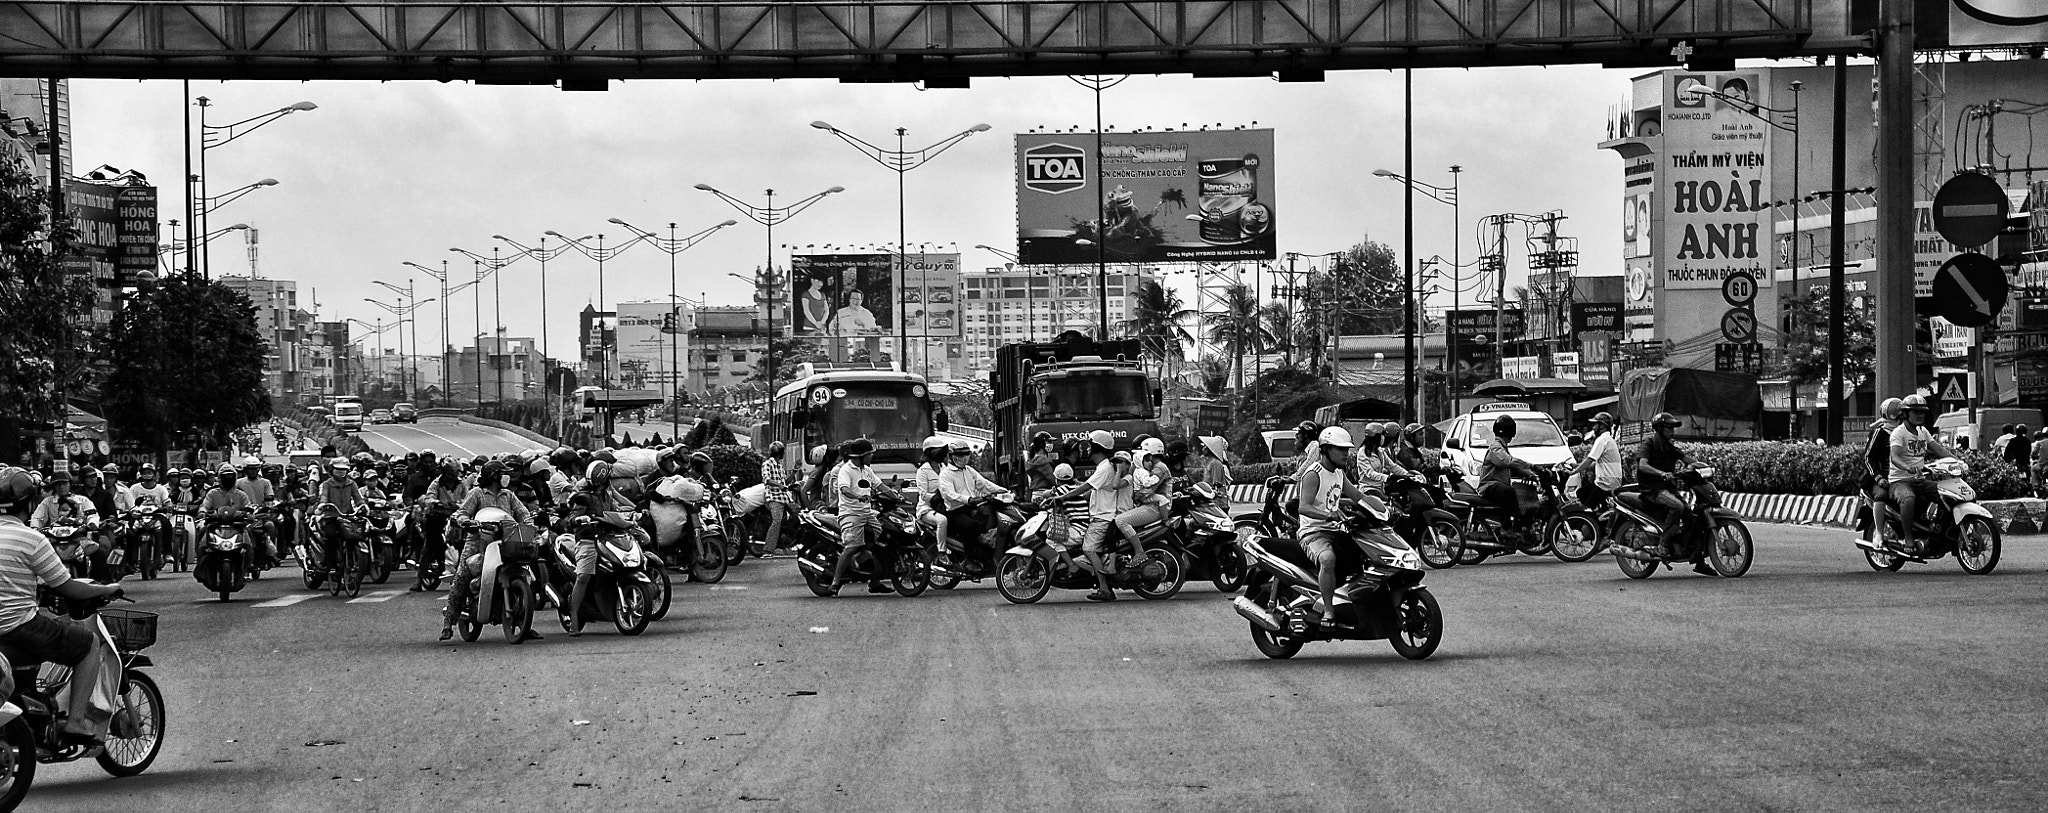 Photograph The Motorbike City - HCM, Vietnam by Rey Talam on 500px